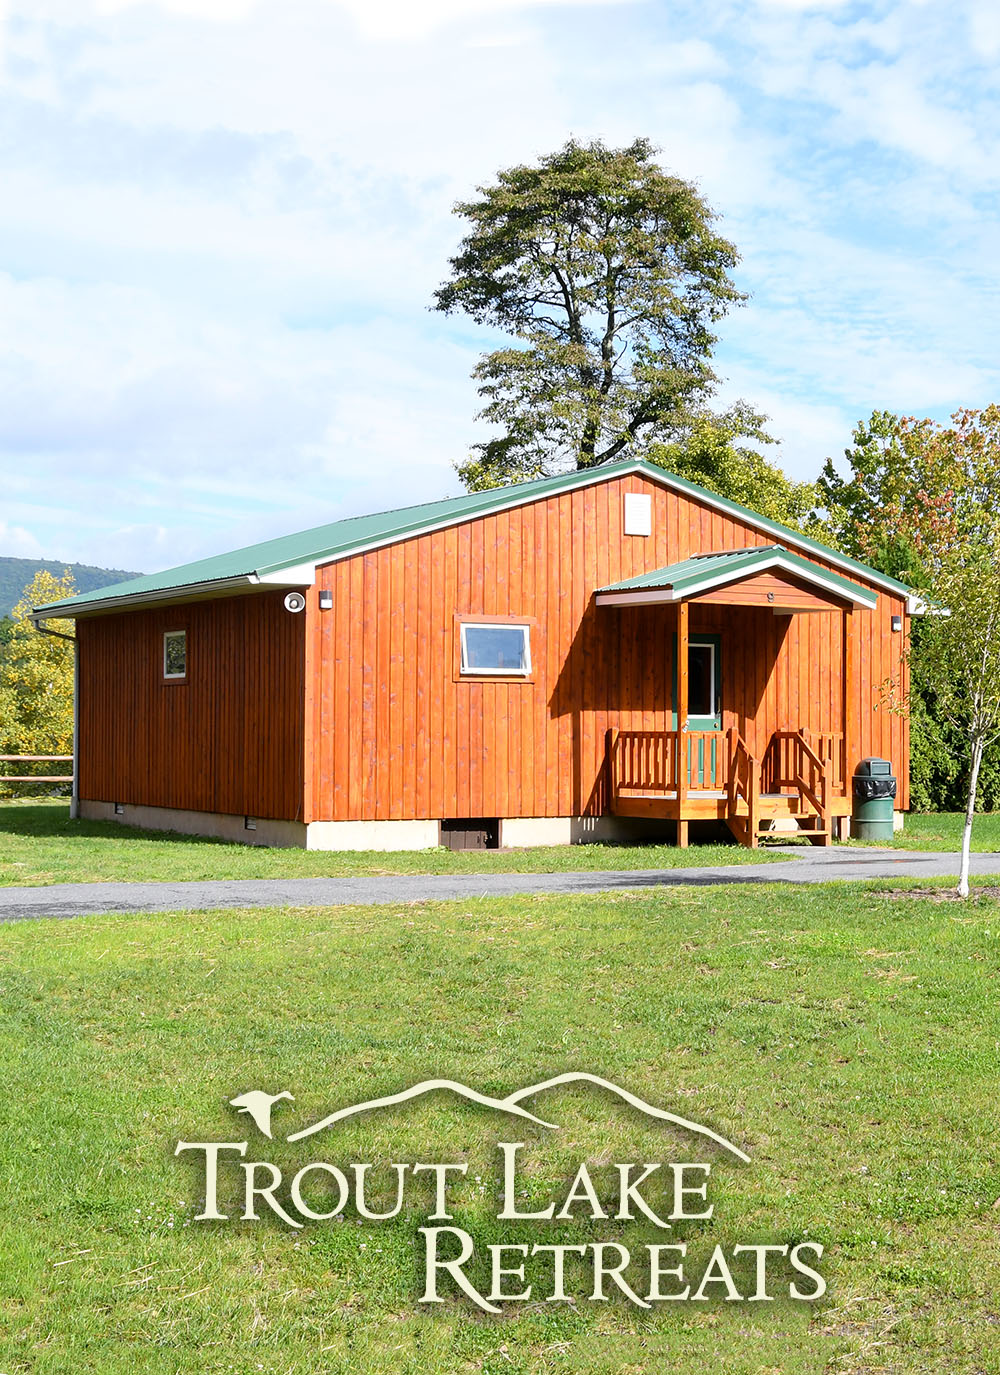 trout lake retreats